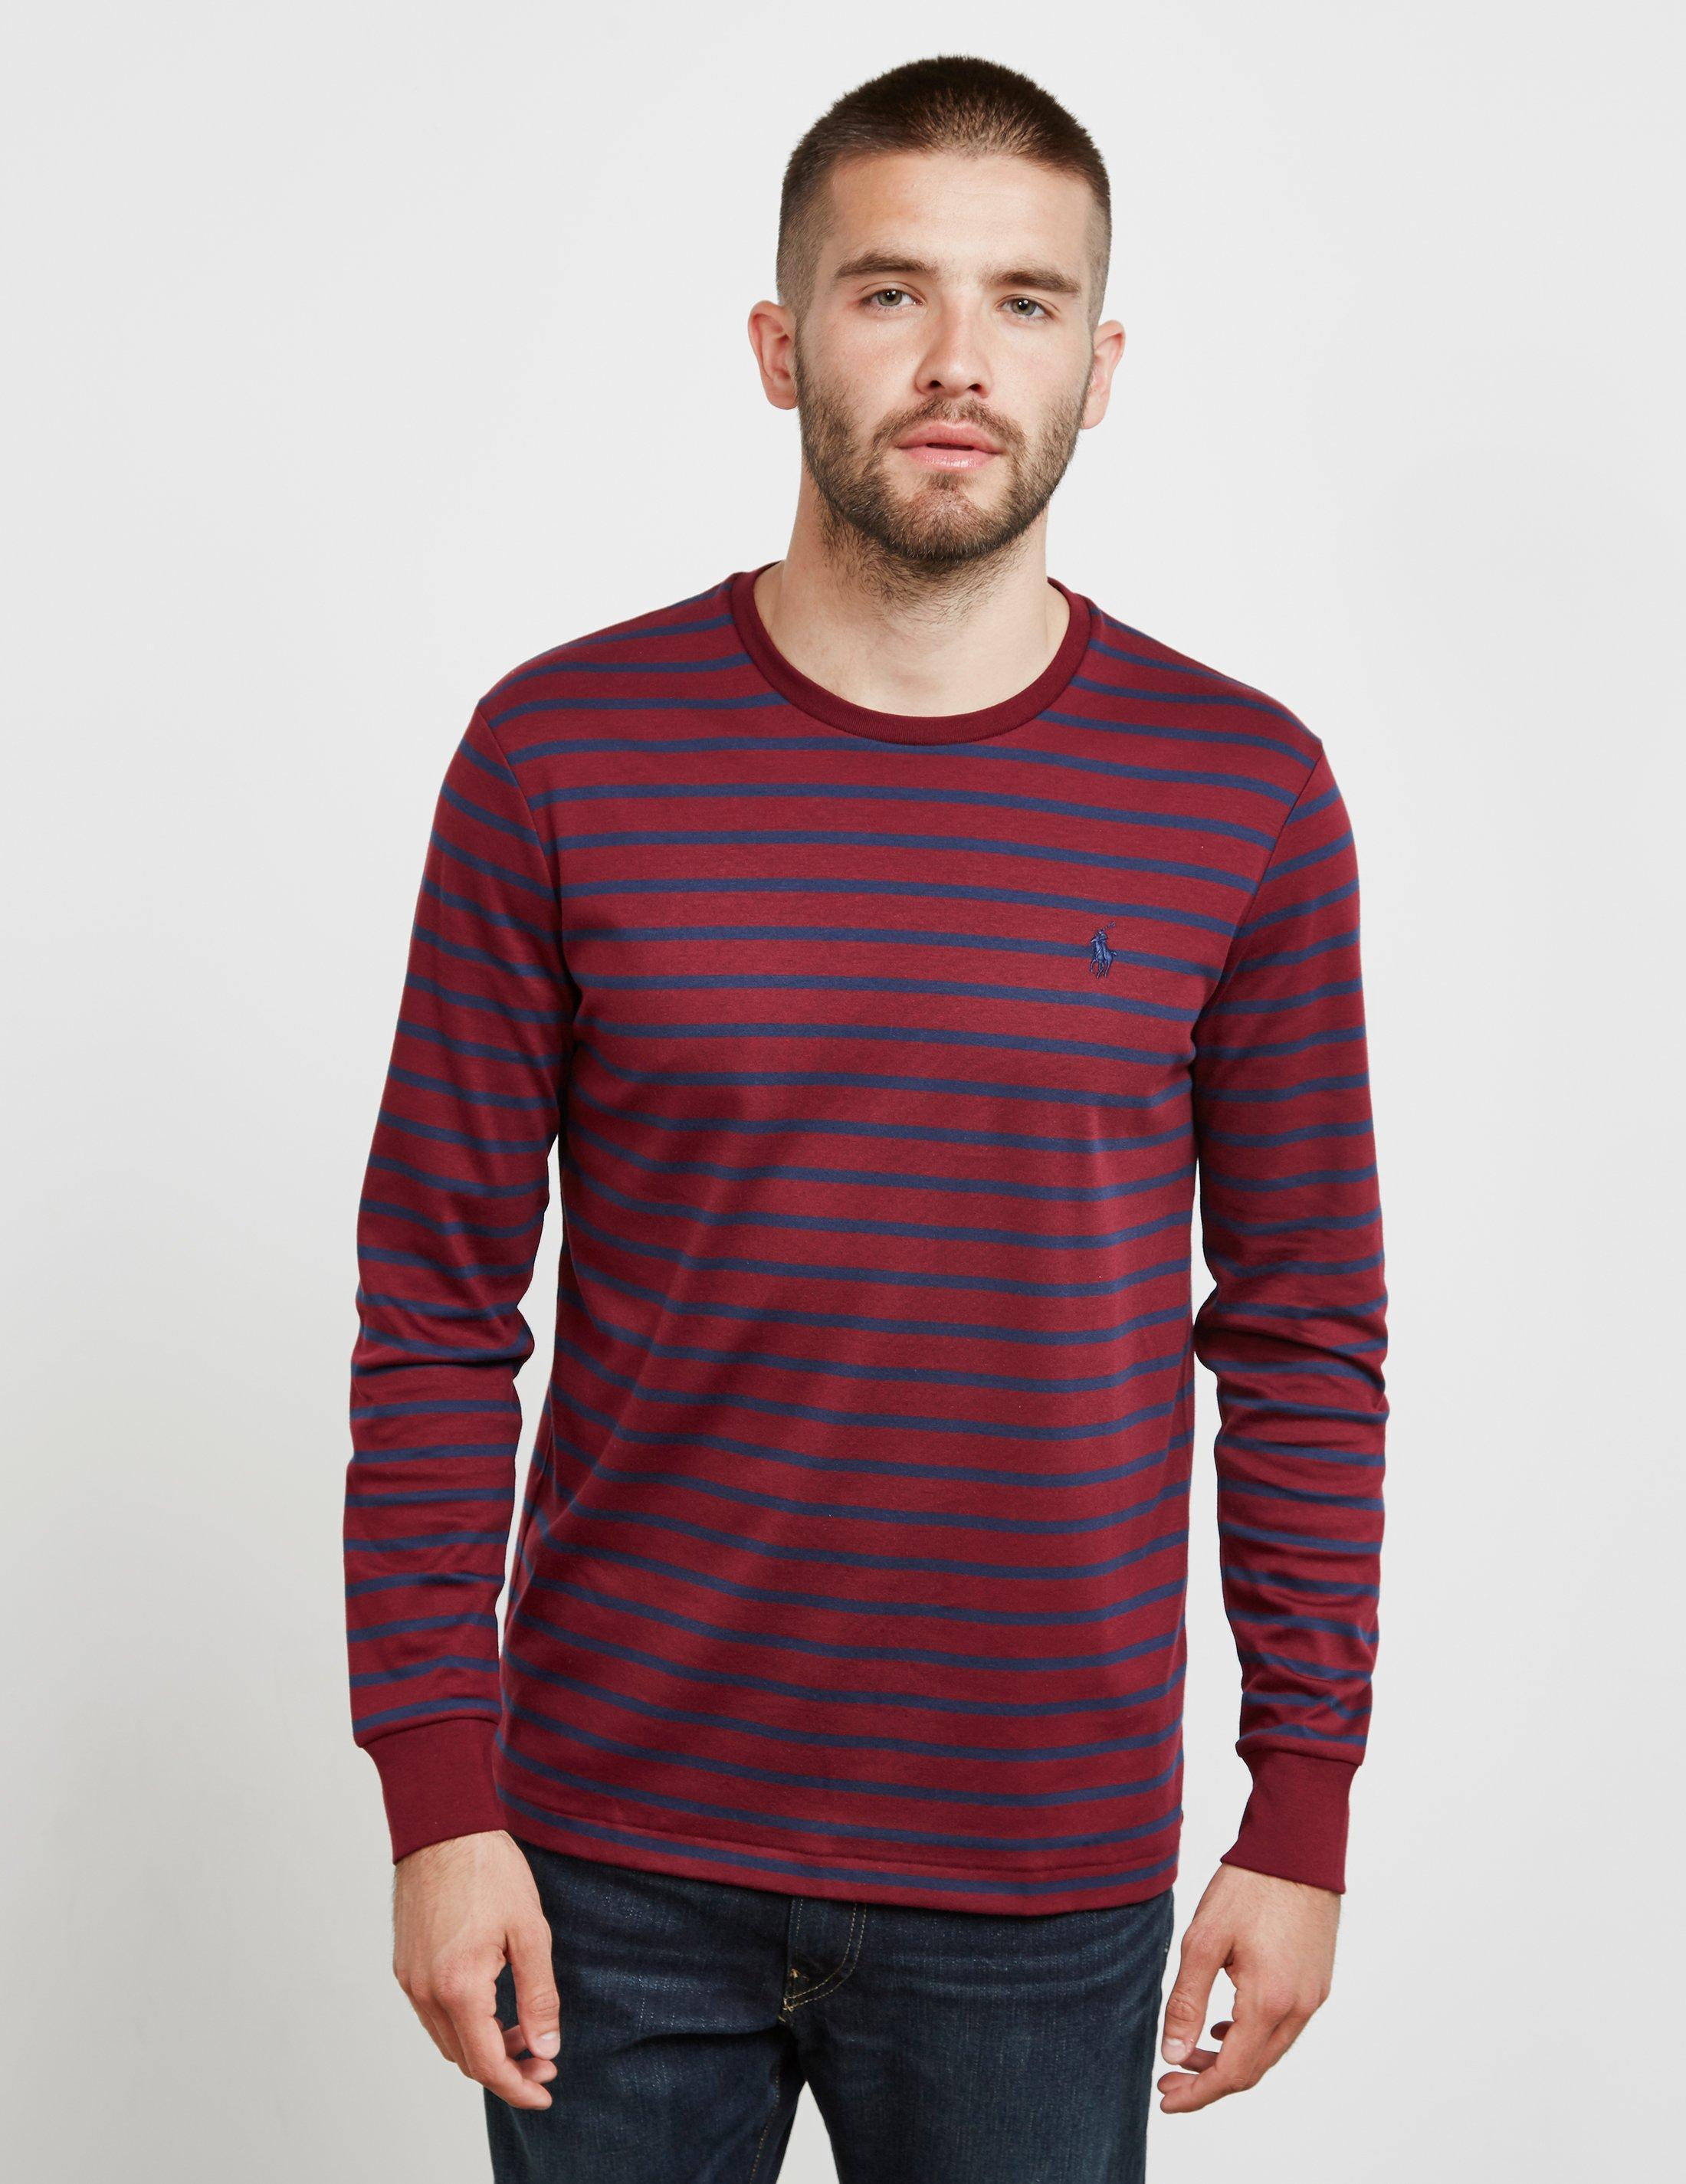 94776ff80533 Polo Ralph Lauren Stripe Long Sleeve T-shirt Red in Red for Men ...